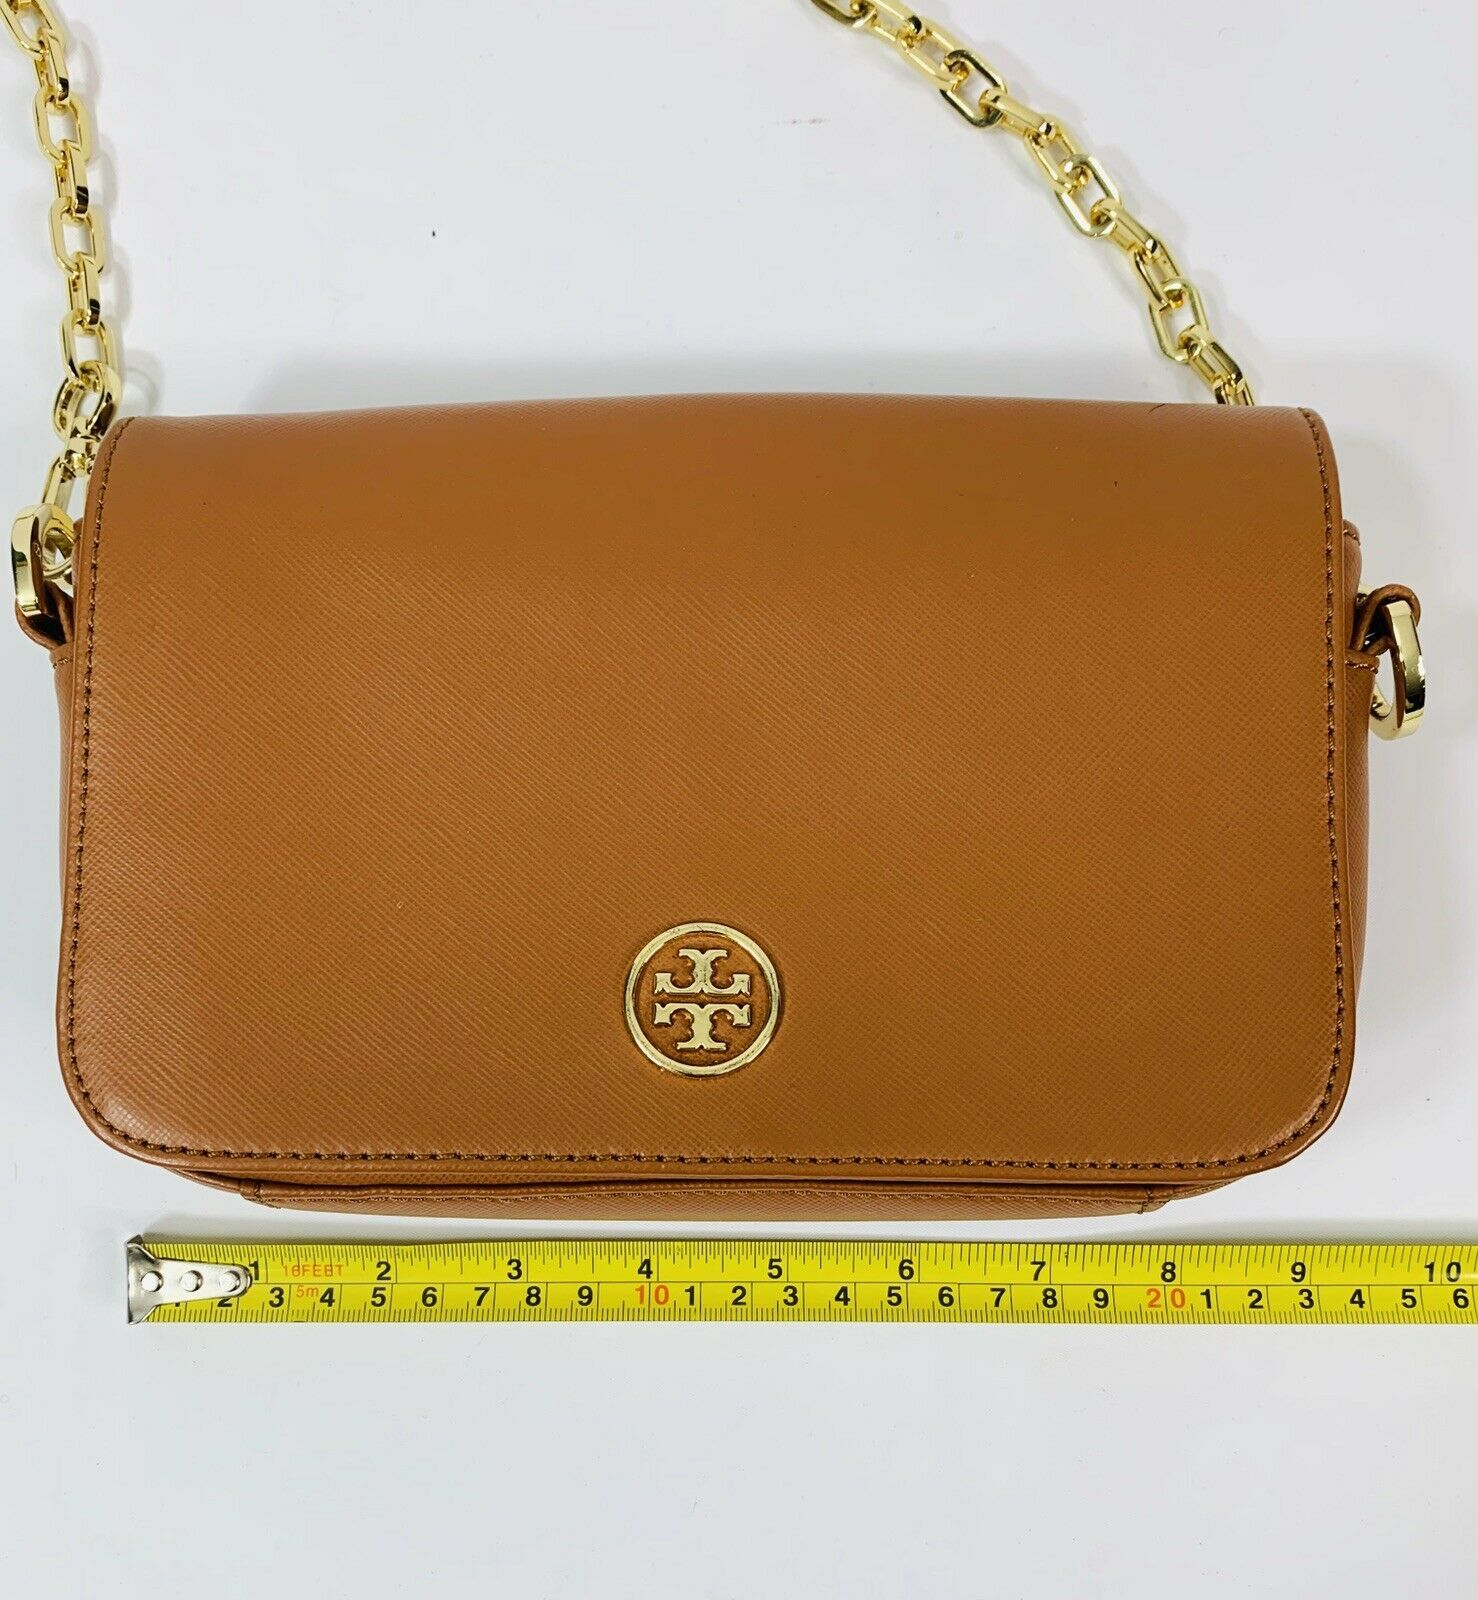 Tory Burch Robinson Chain Strap Tiger's Eye Brown Leather Crossbody Bag image 7